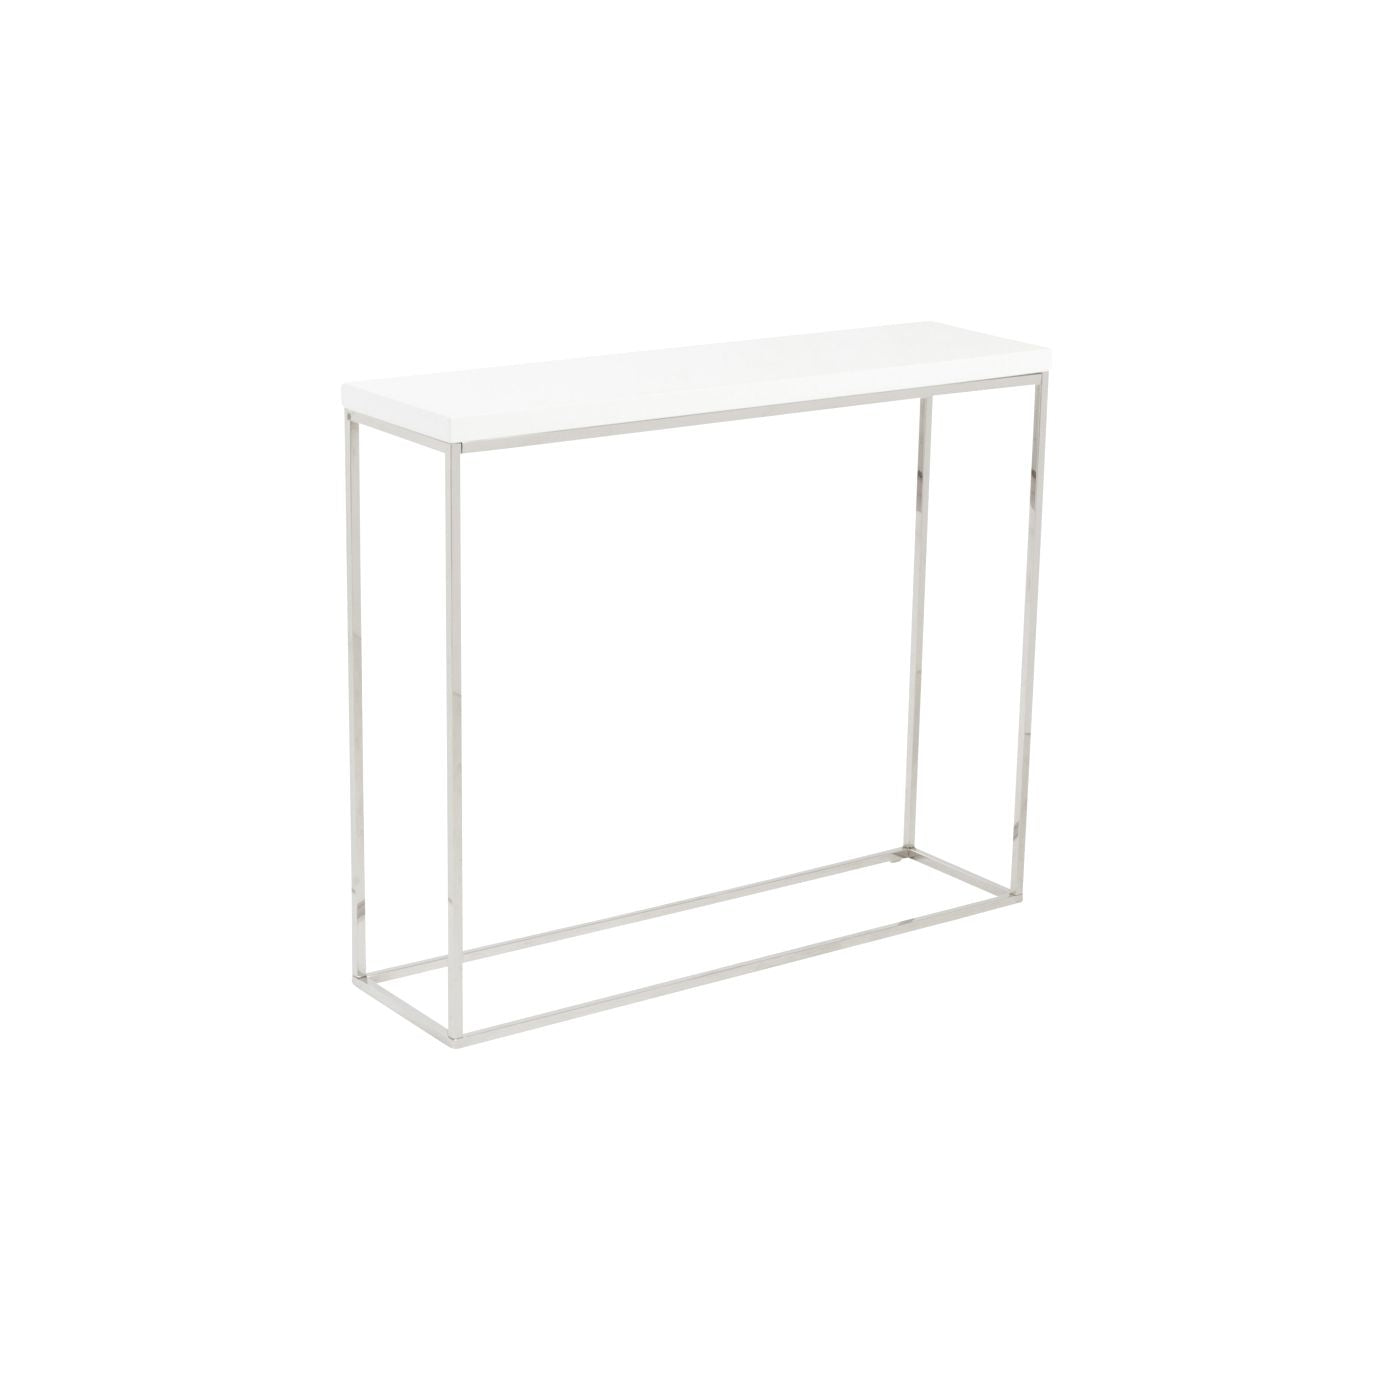 Euro Style Teresa Console Table in White Lacquer with Polished ...